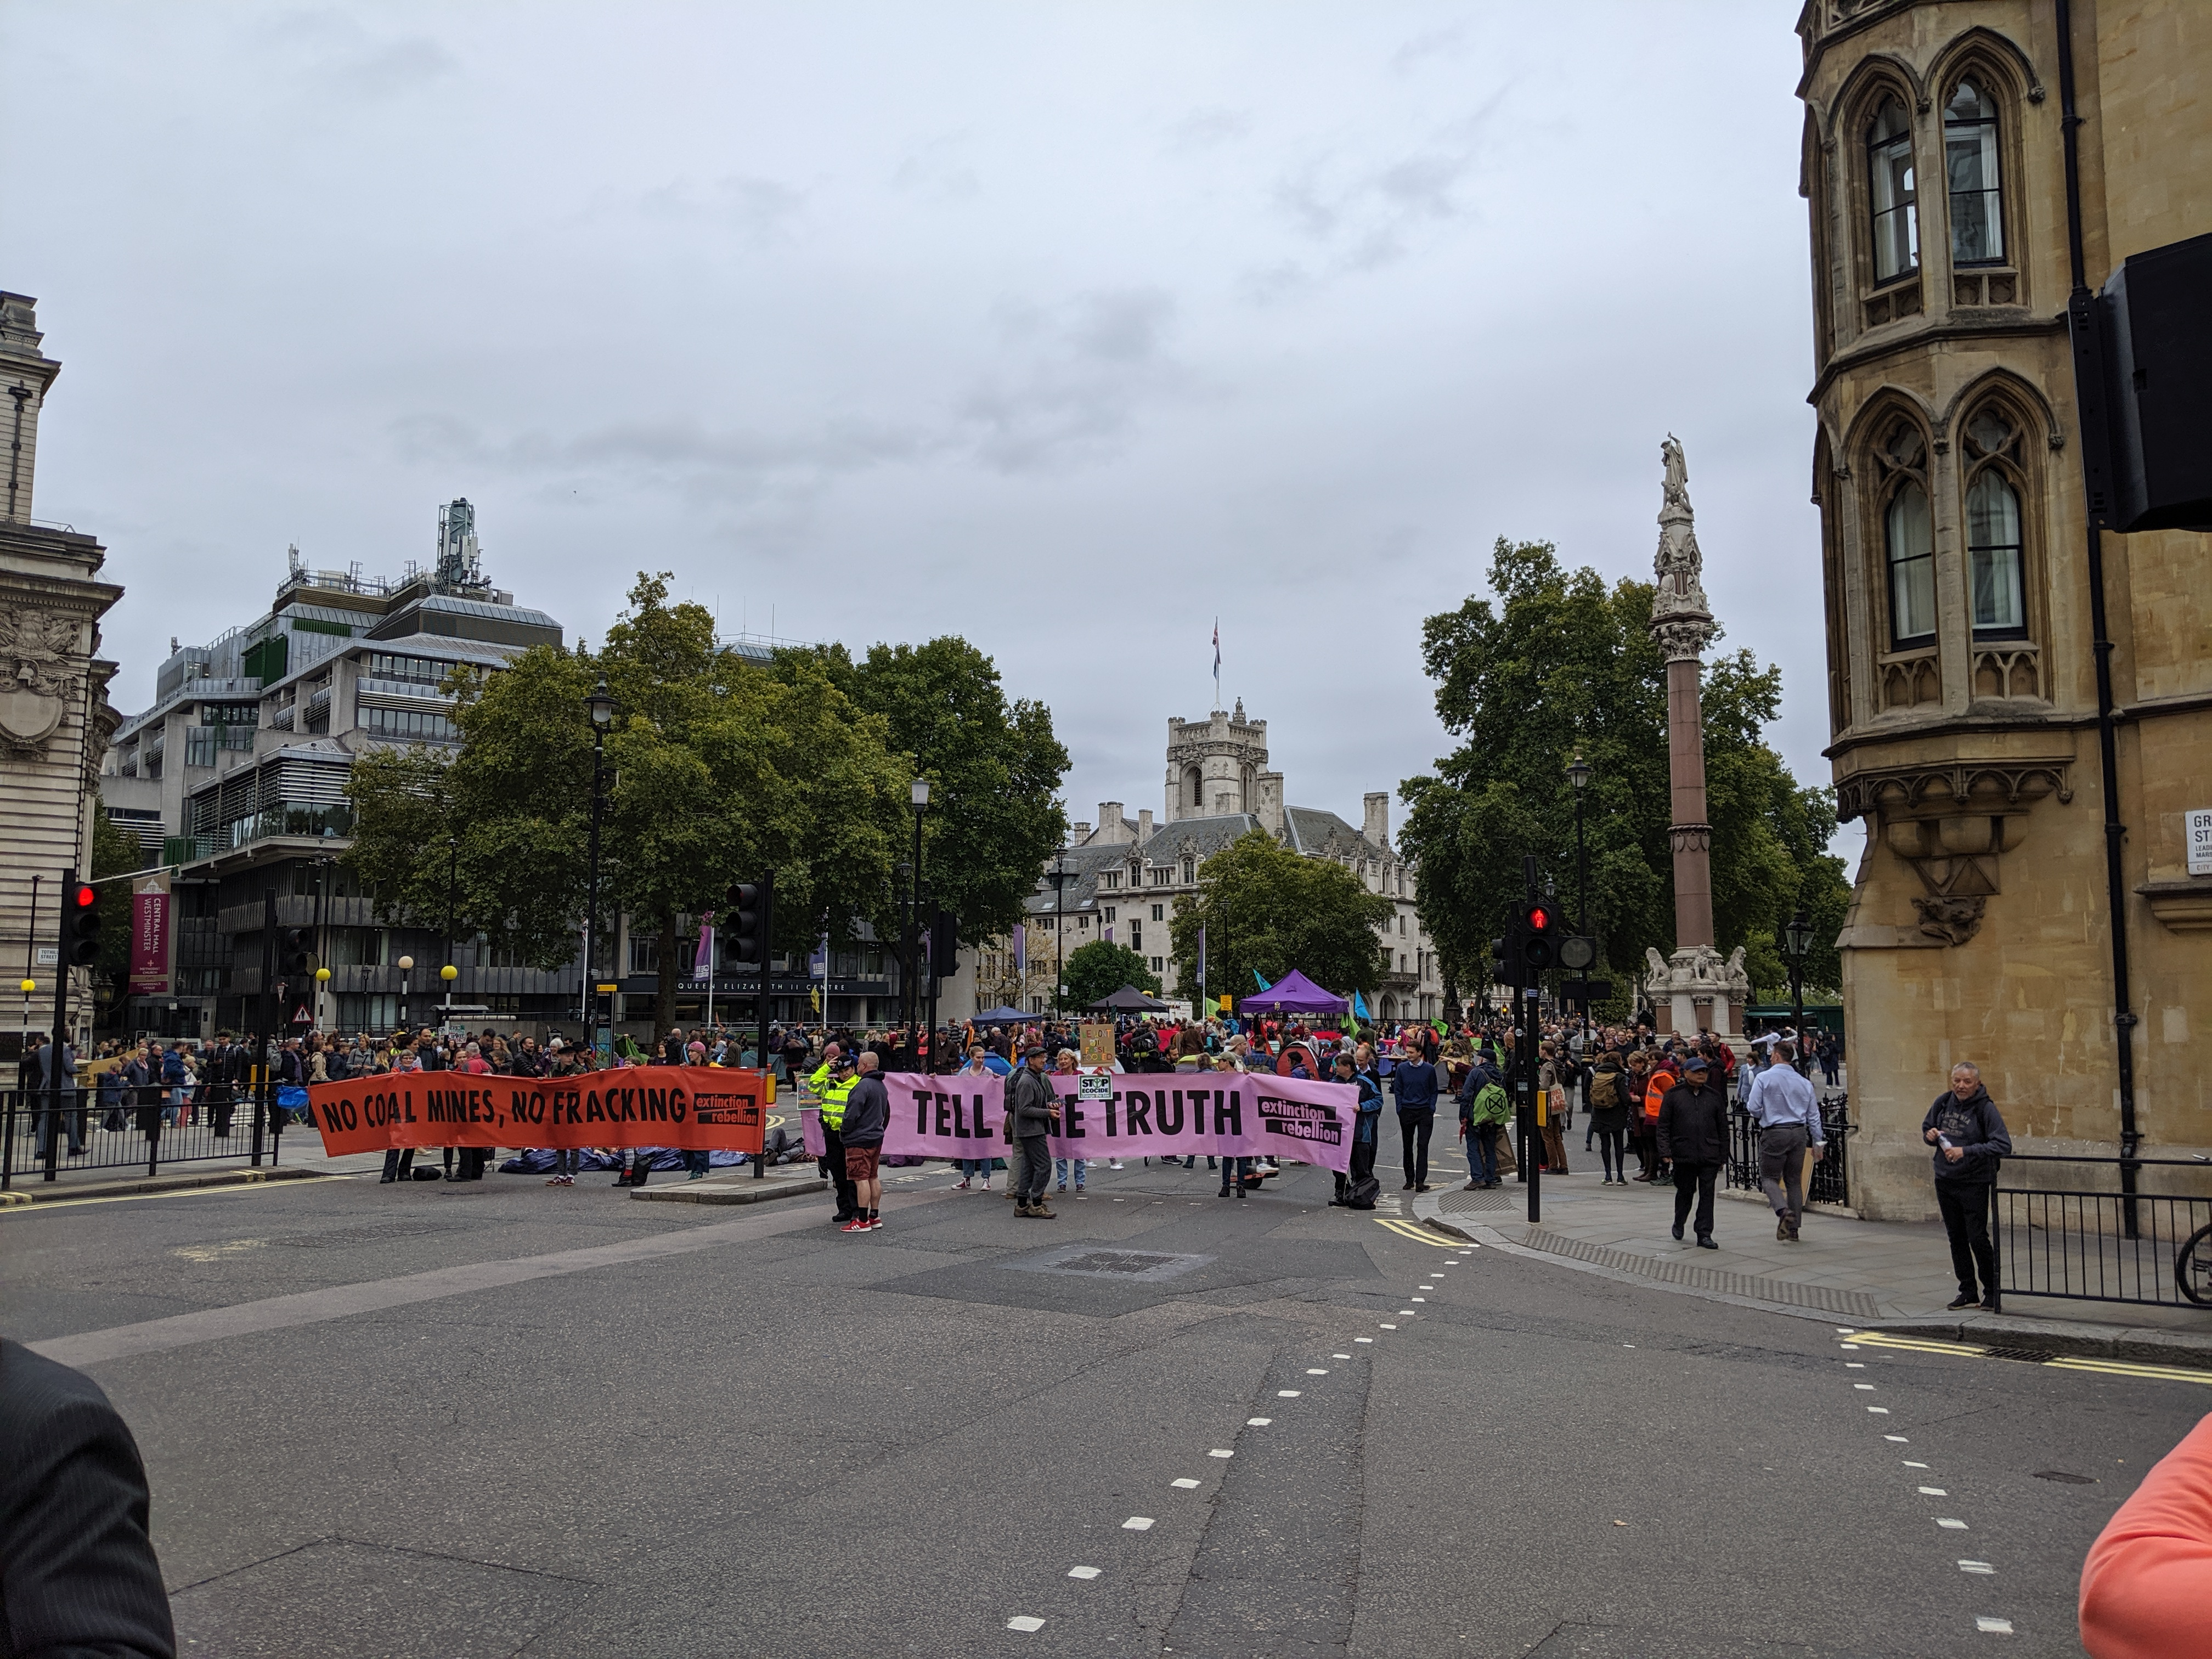 Extinction Rebellion blocking the road into Parliament Square at the top of Victoria Street around noon on Monday 7th October 2019. (Photo: James Kemp)